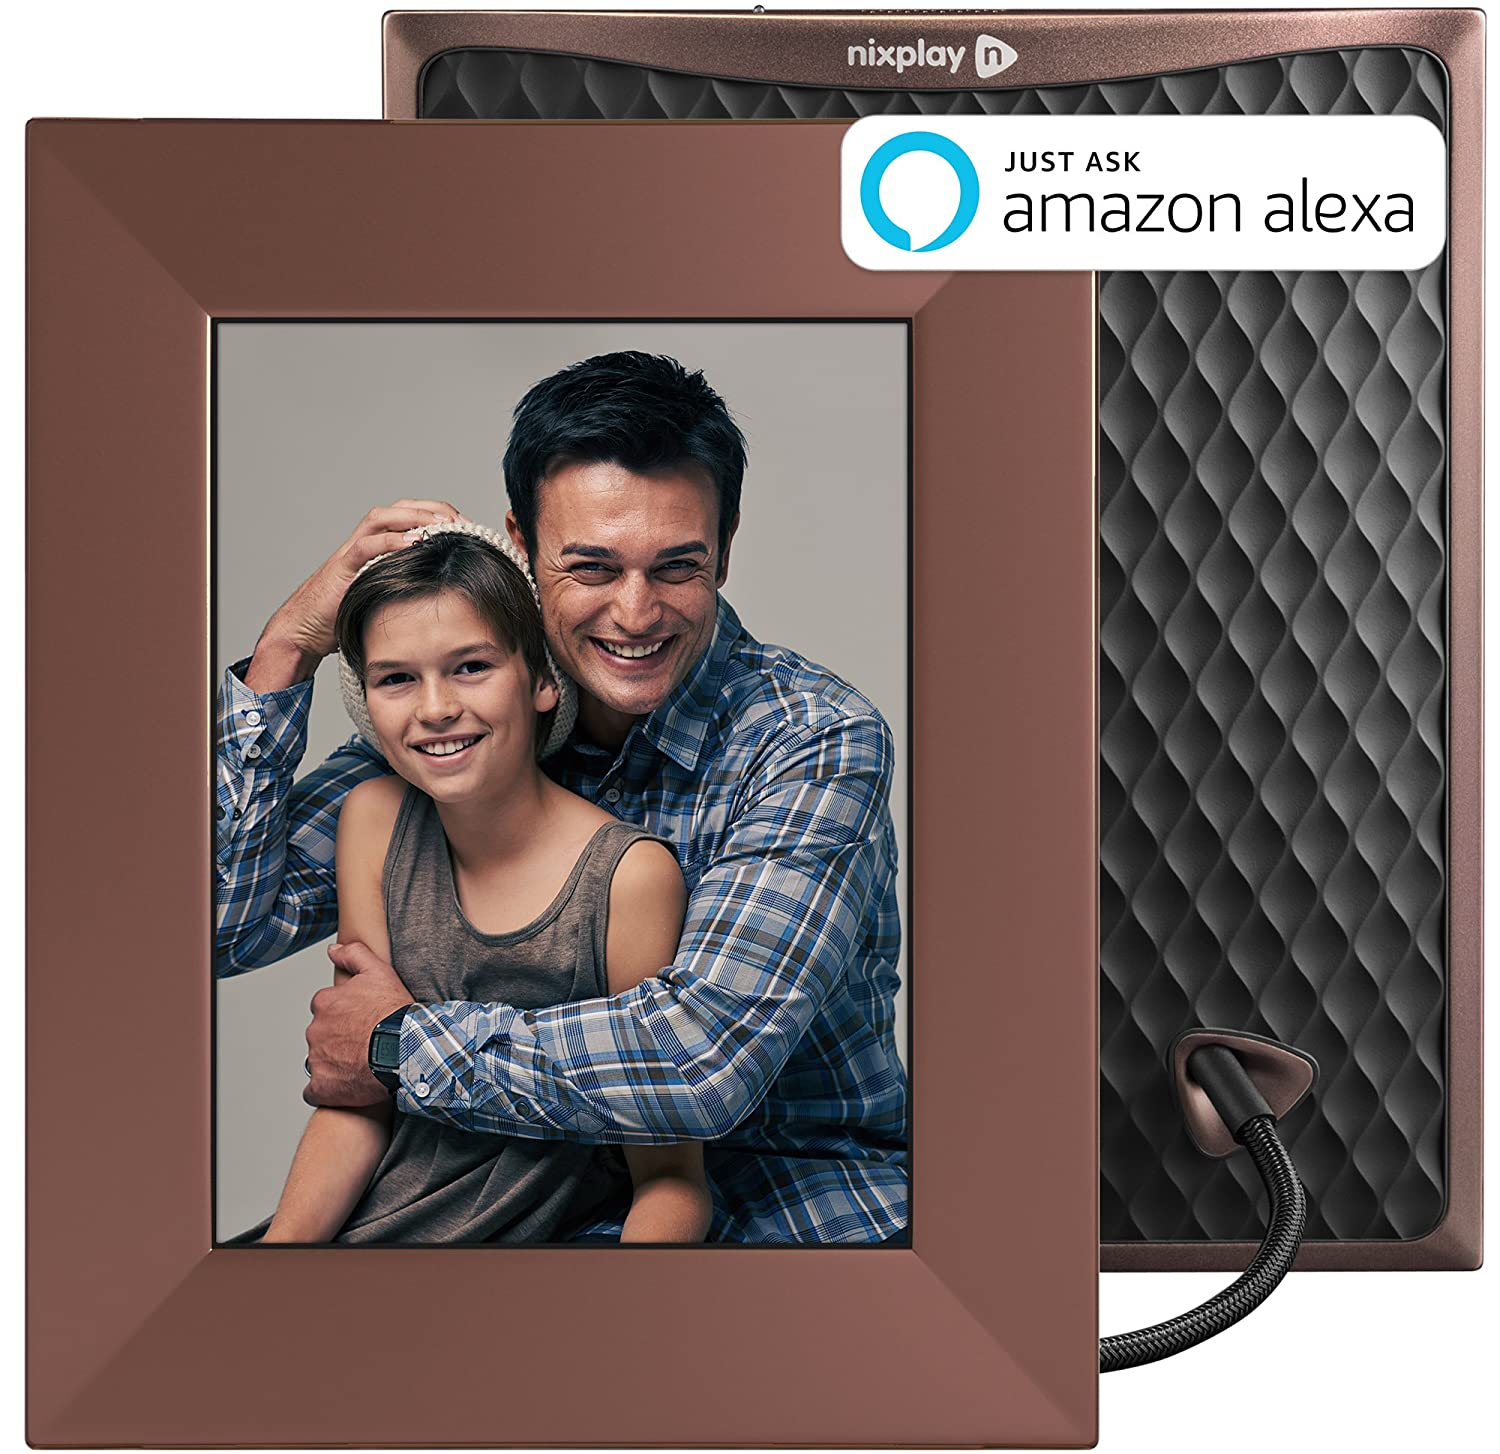 "Nixplay W08E- Burnished Bronze Iris 8"" Wi-Fi Cloud Digital Photo Frame IPS Display, iPhone & Android App, iOS Video Playback, Free 10GB Online Storage, Alexa Integration, Burnished Bronze"